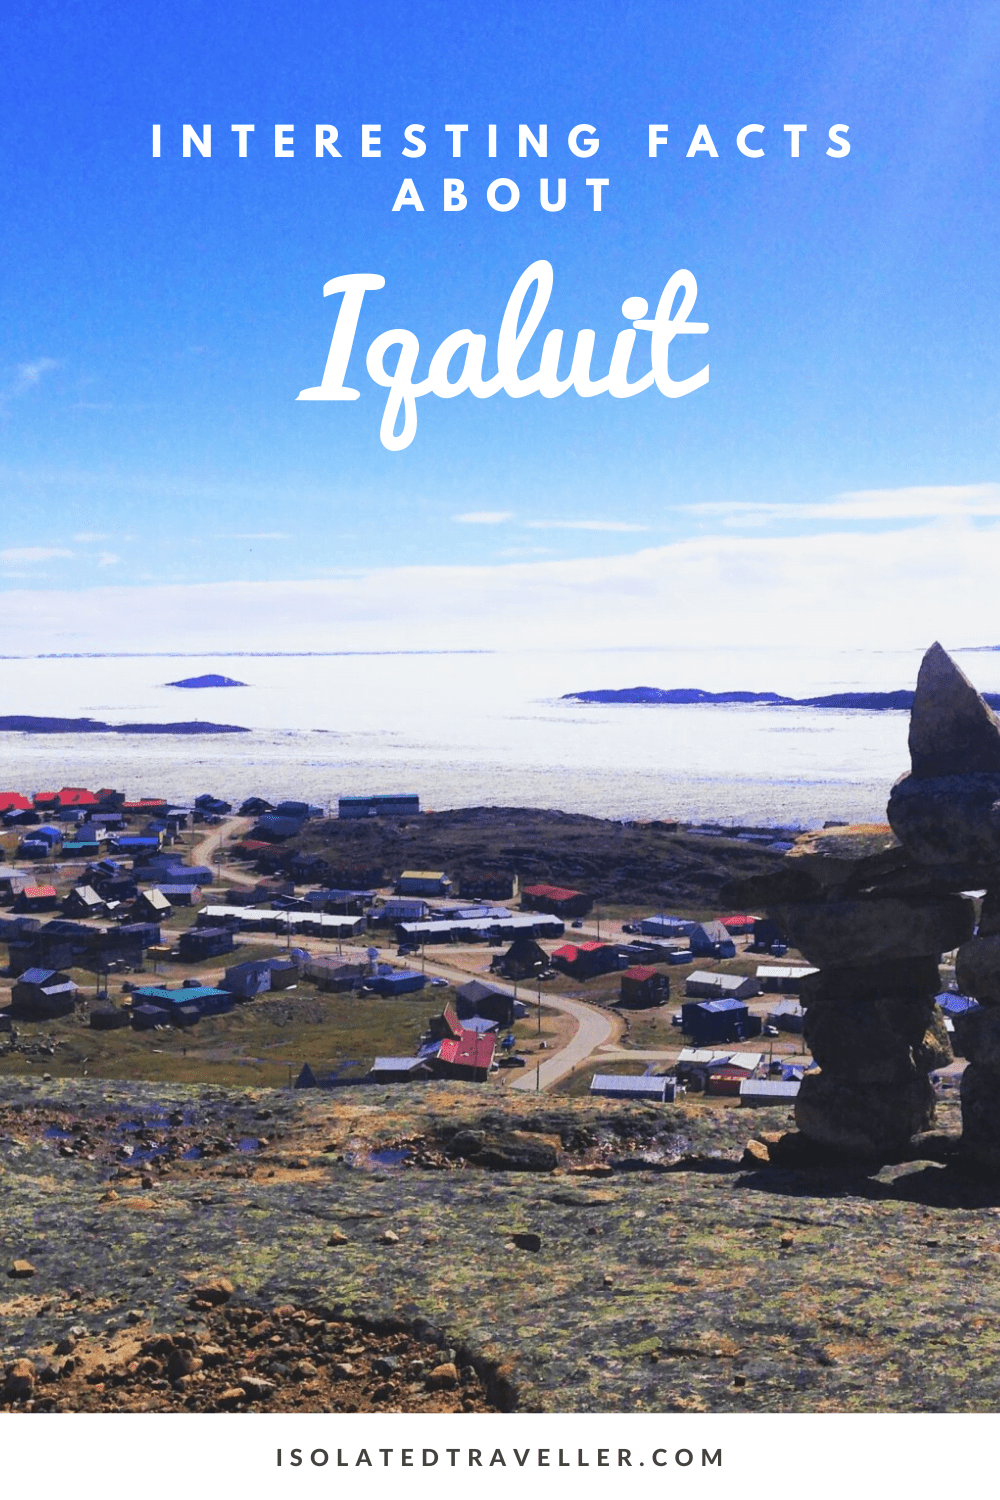 Facts About Iqaluit